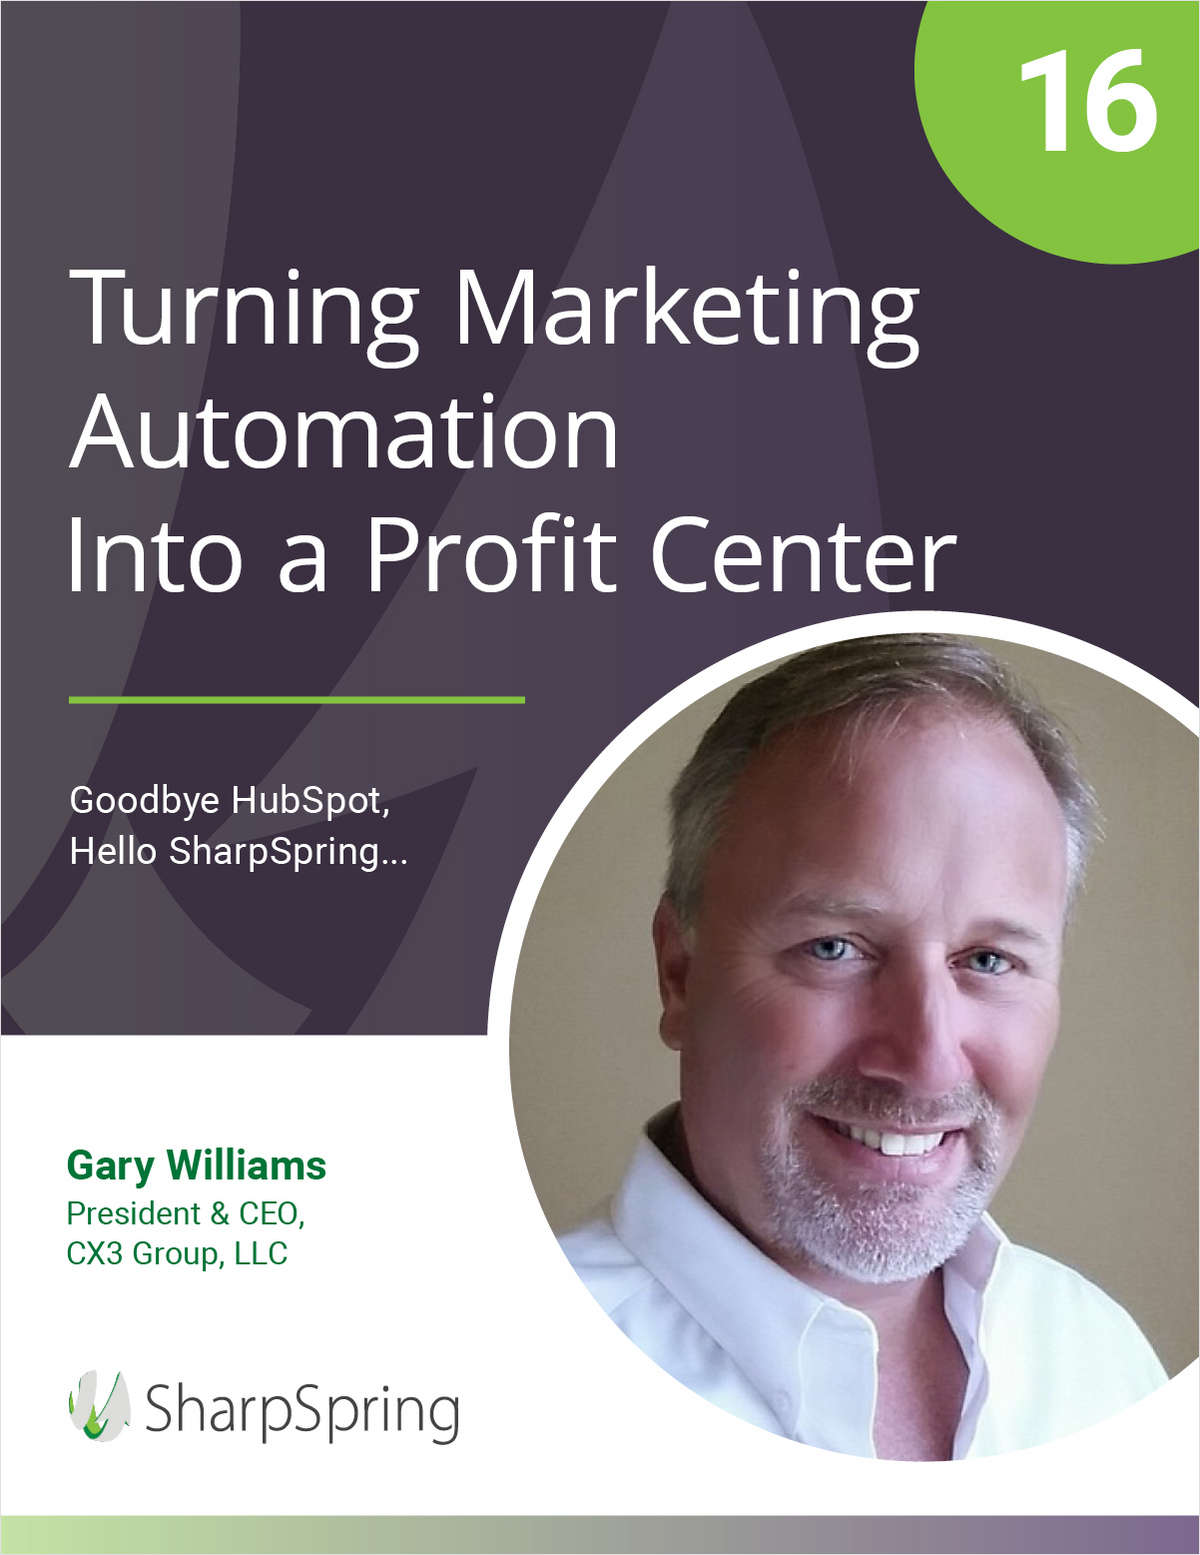 Turn Marketing Automation into a Killer Profit Center [How-To Guide for Agencies]